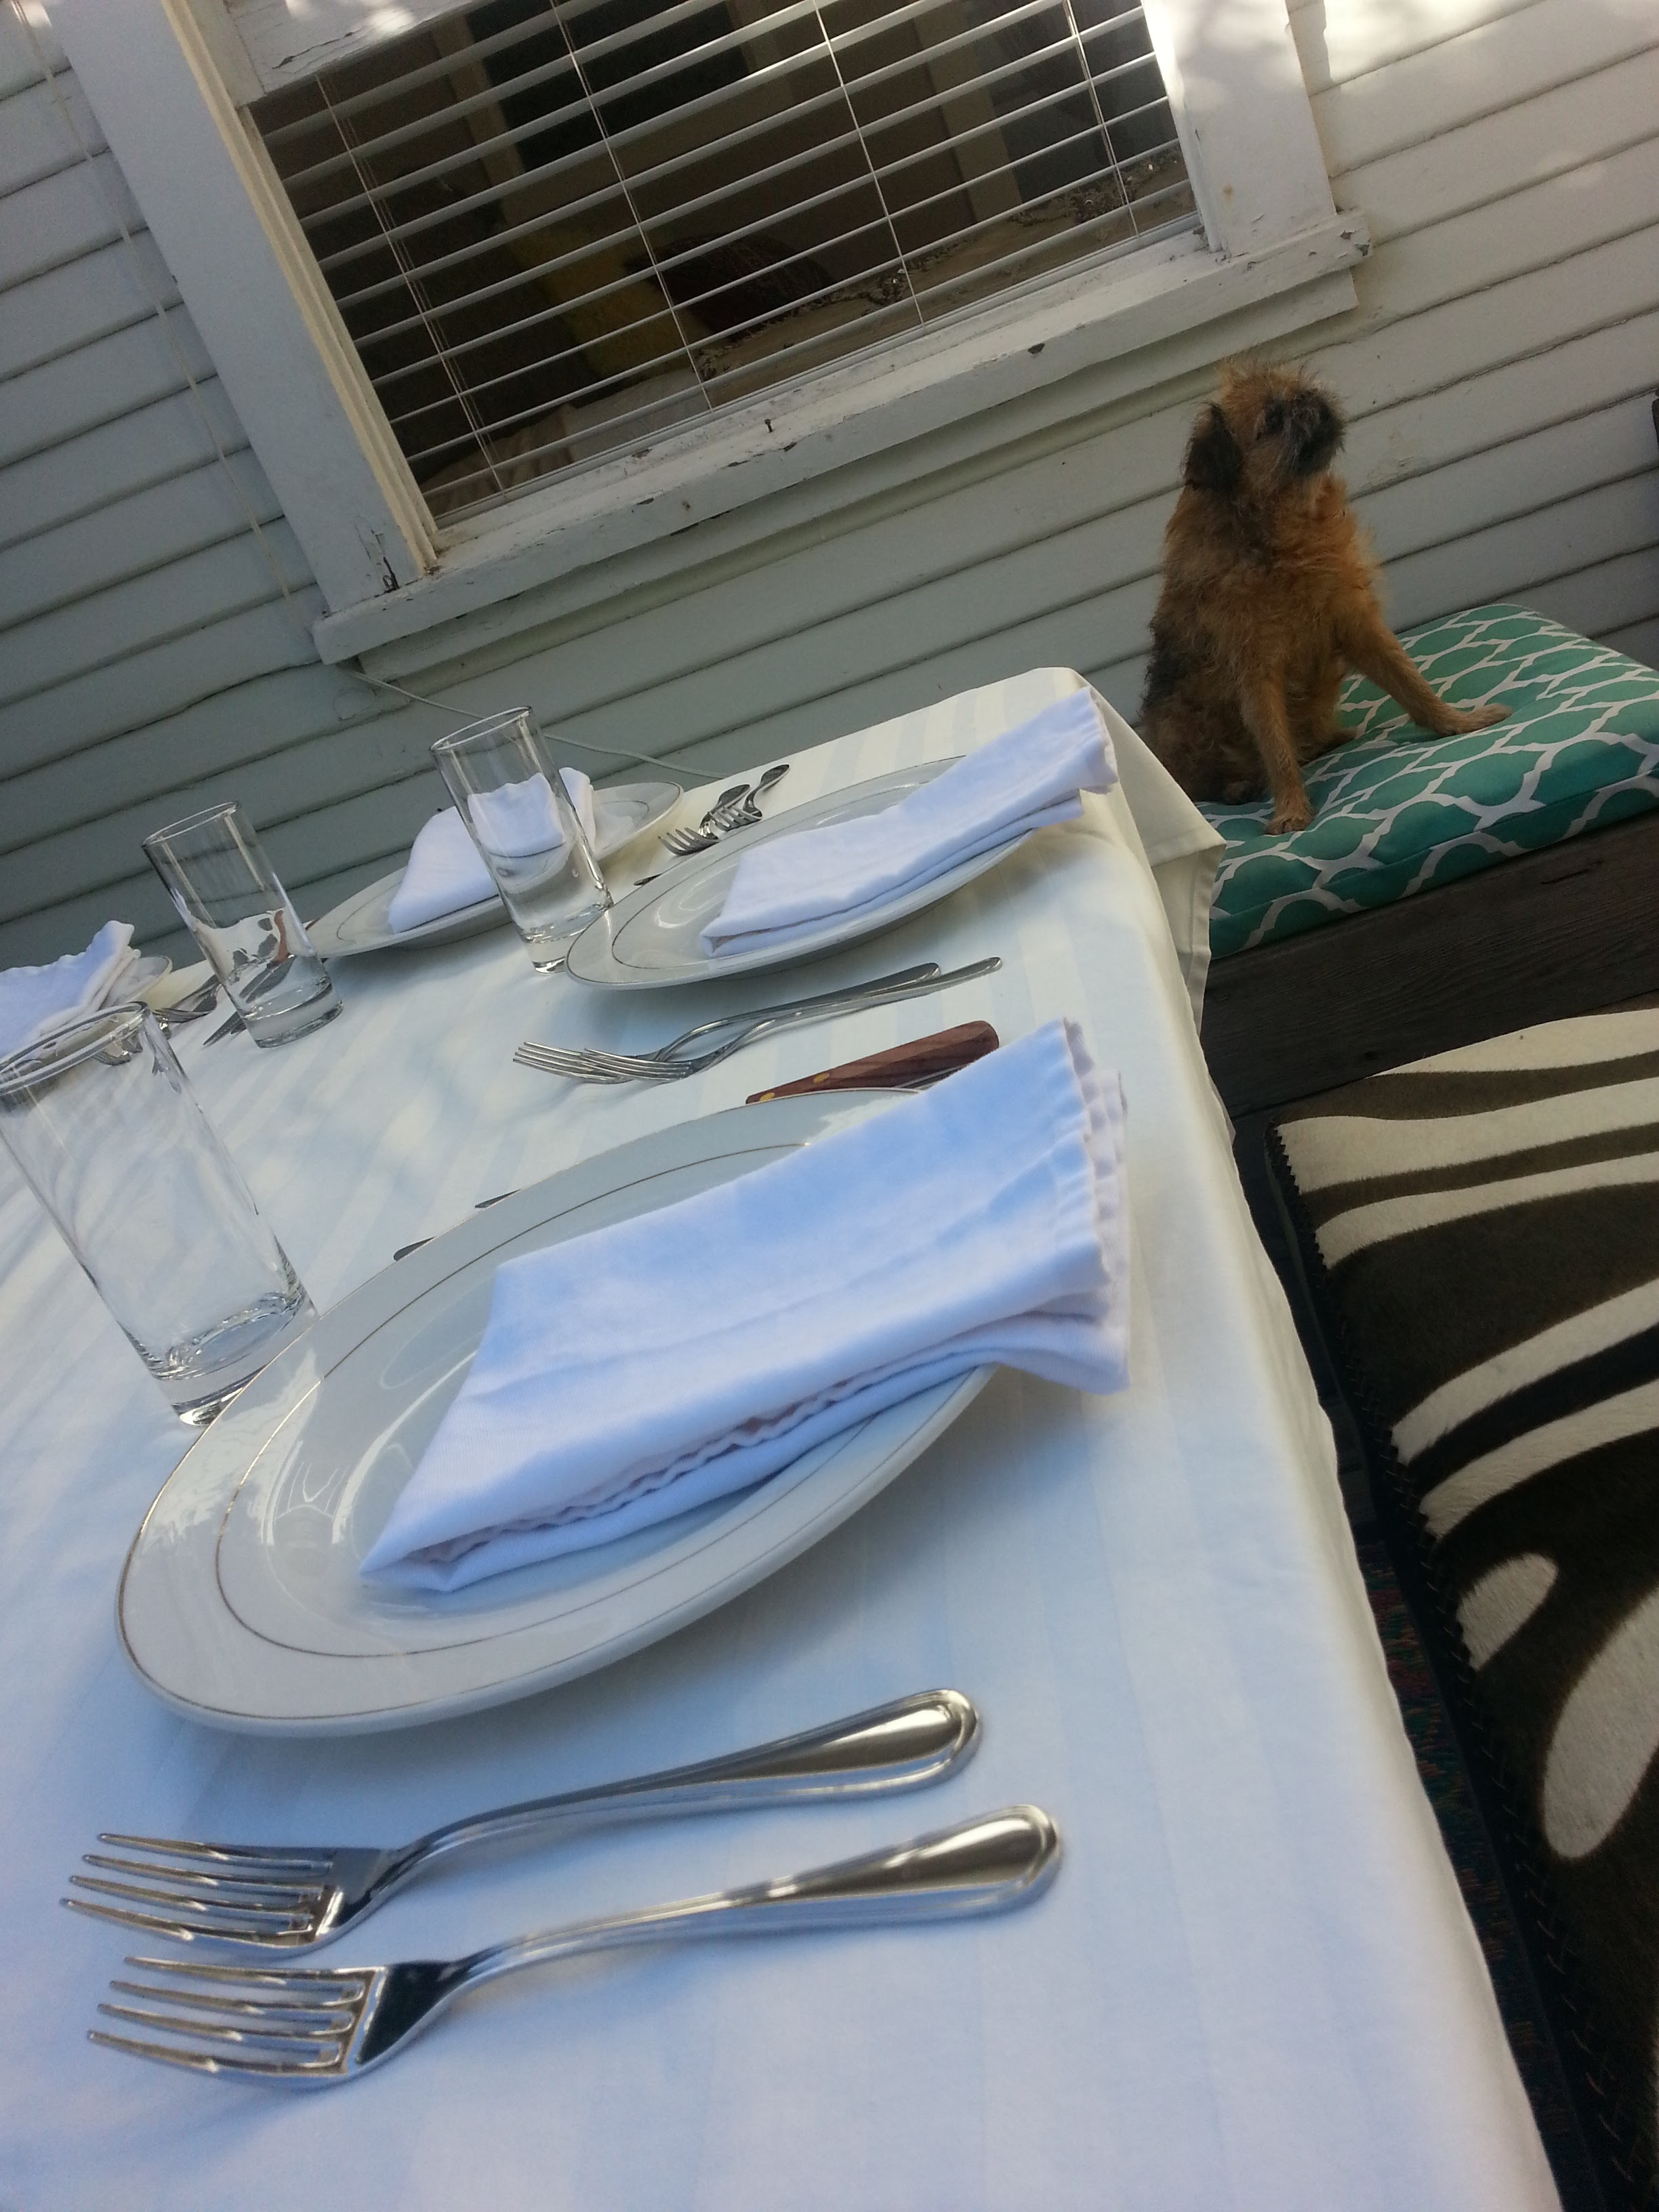 Table setting - and the evening's furry mascot